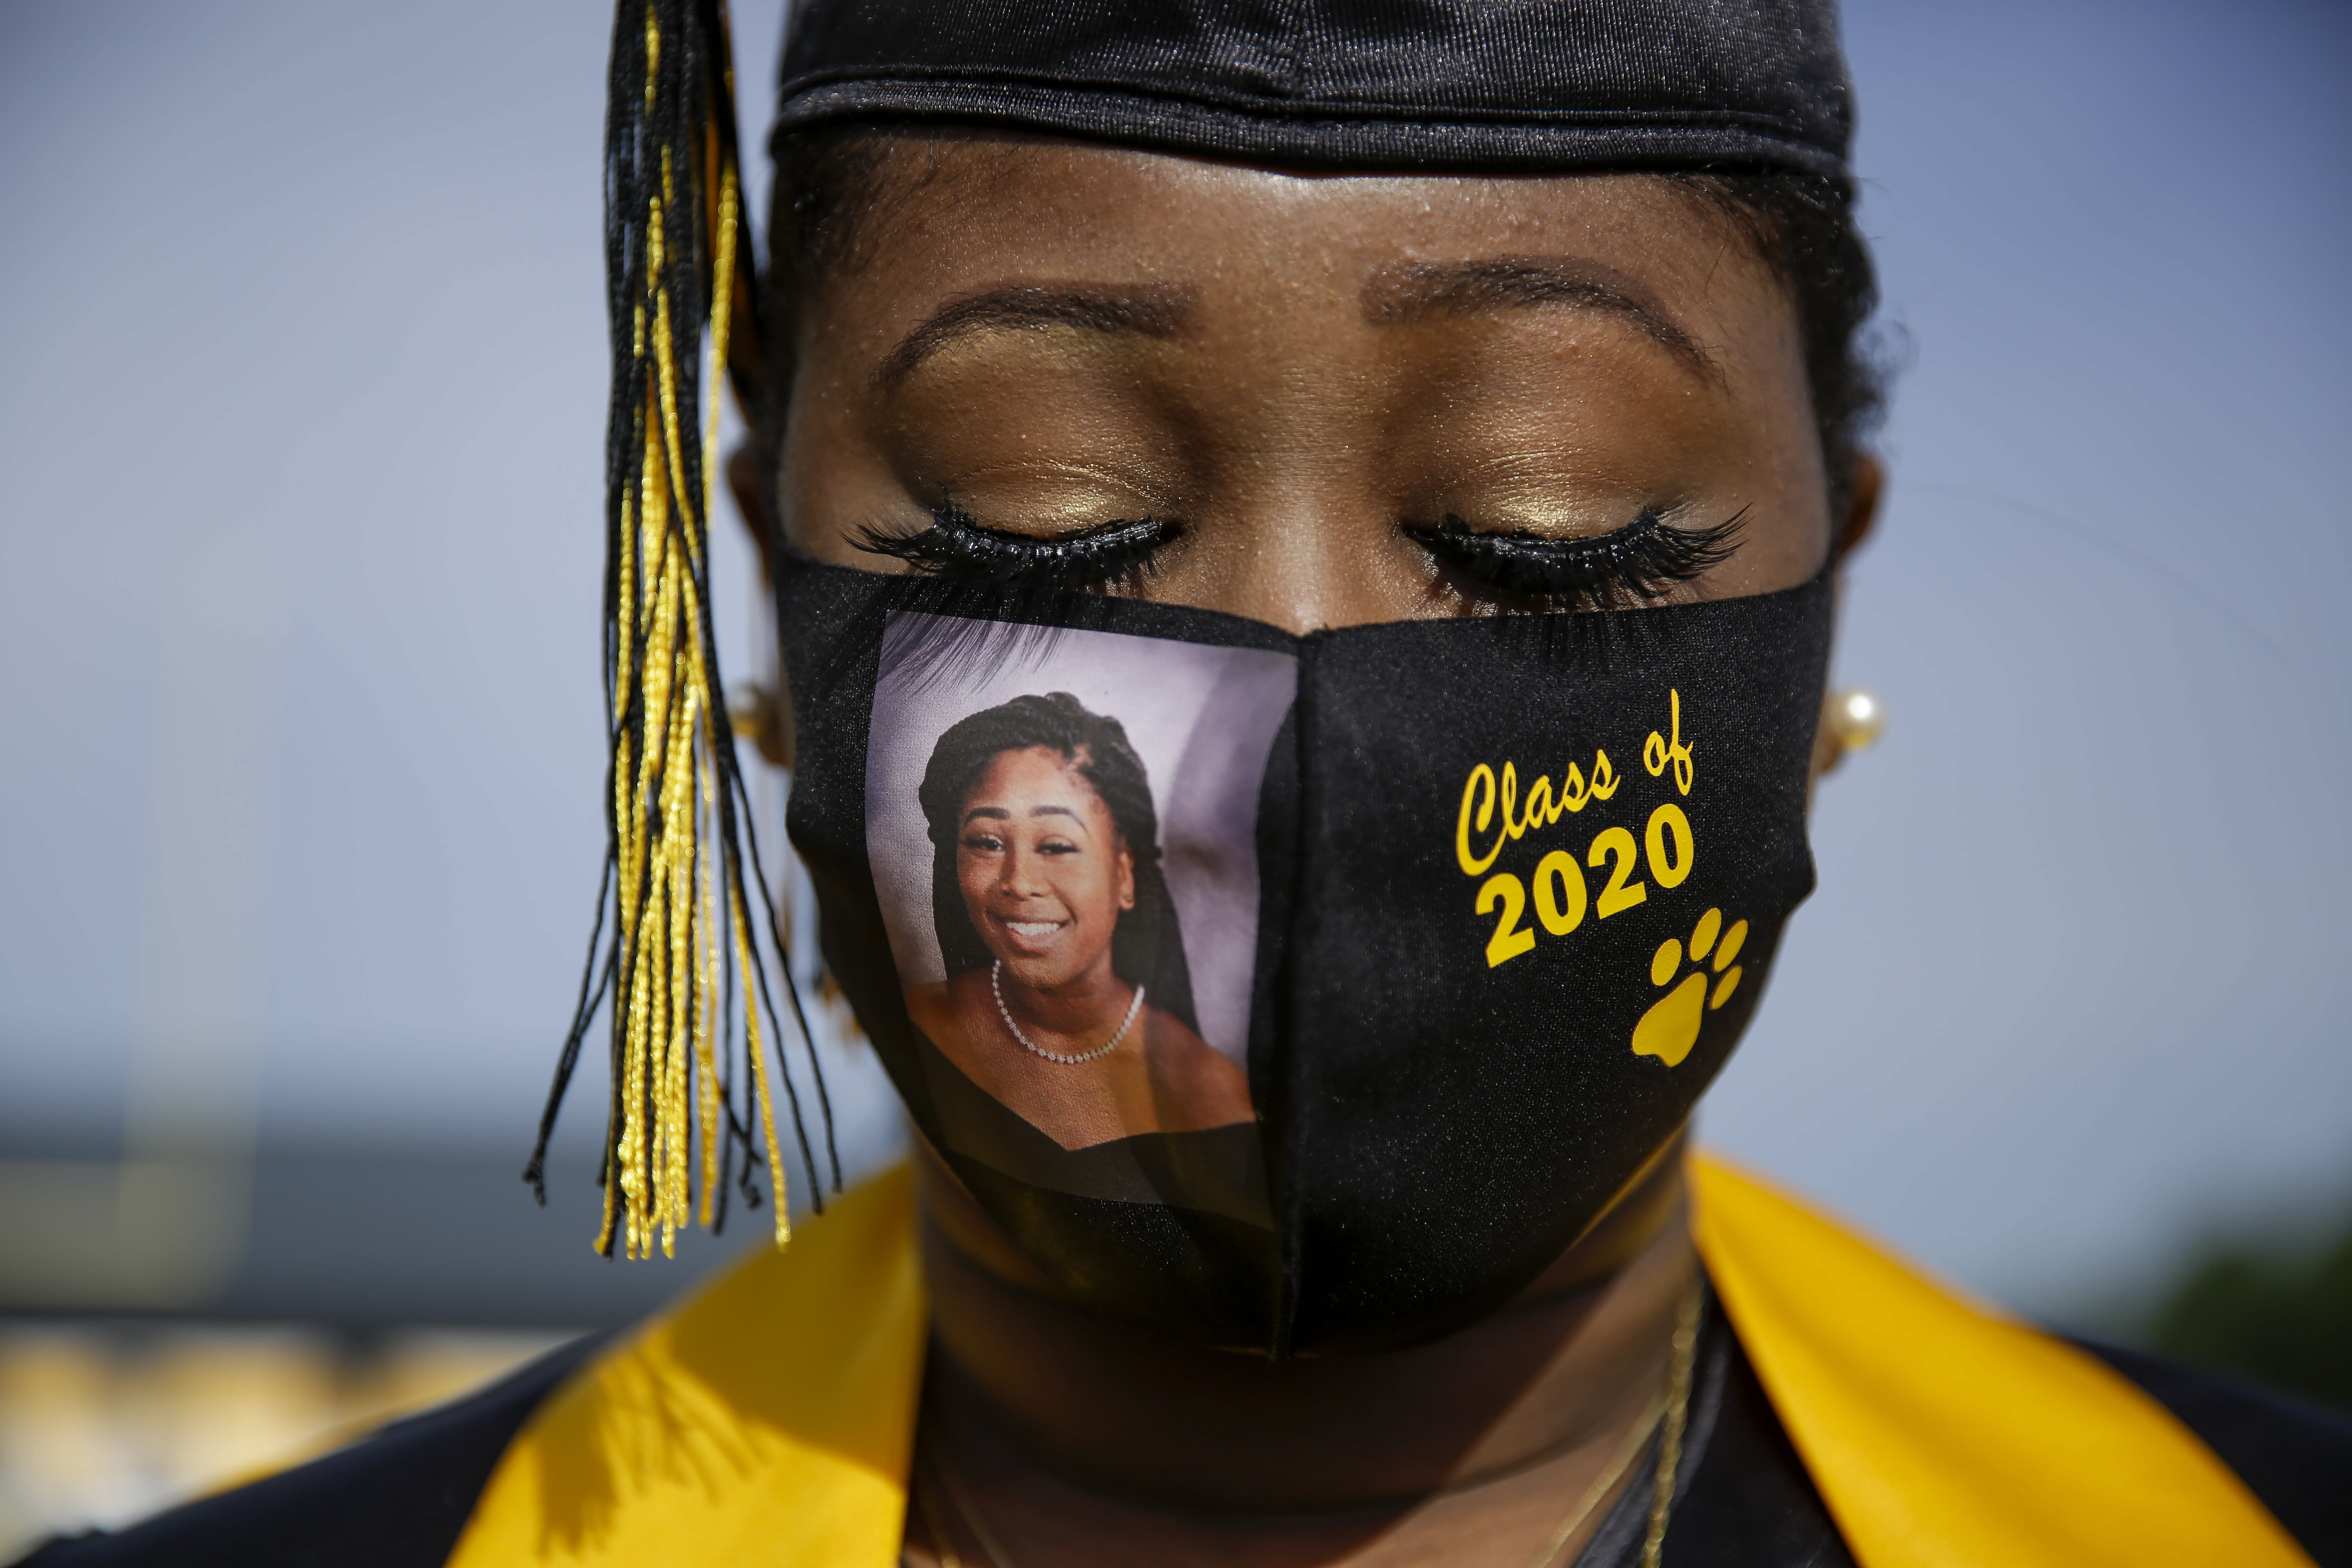 Most 2020 grads are desperate and applying for jobs that aren't the right fit: Monster